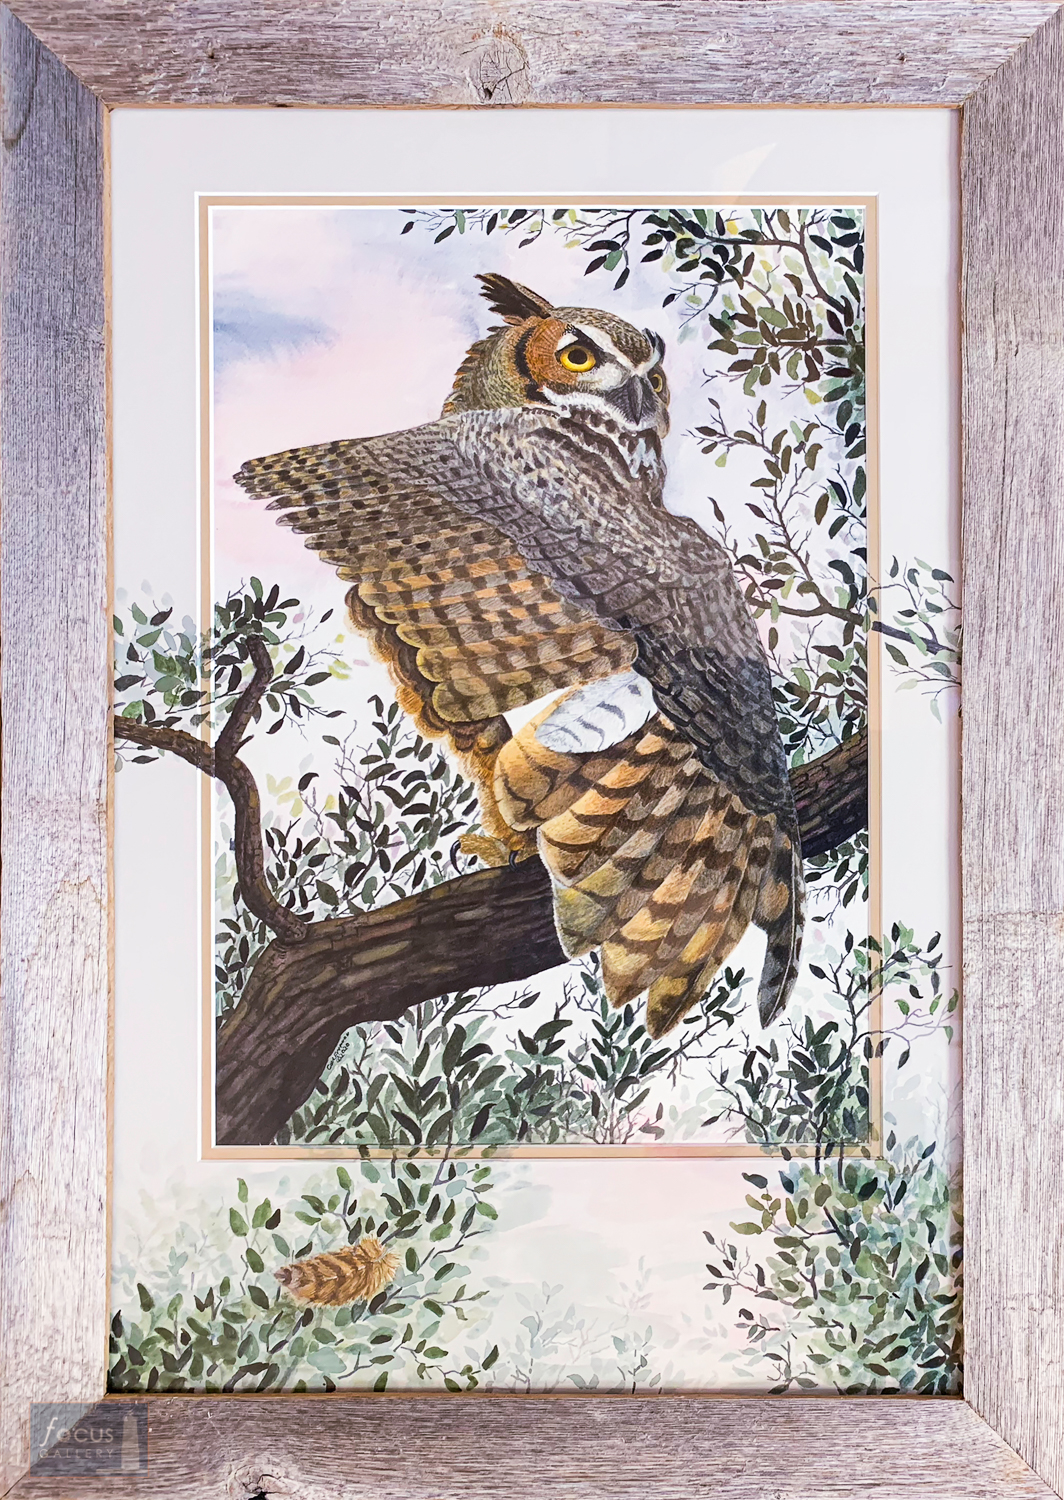 Original watercolor painting of a Great Horned Owl bird stretching its wing with painting continued onto mat board.